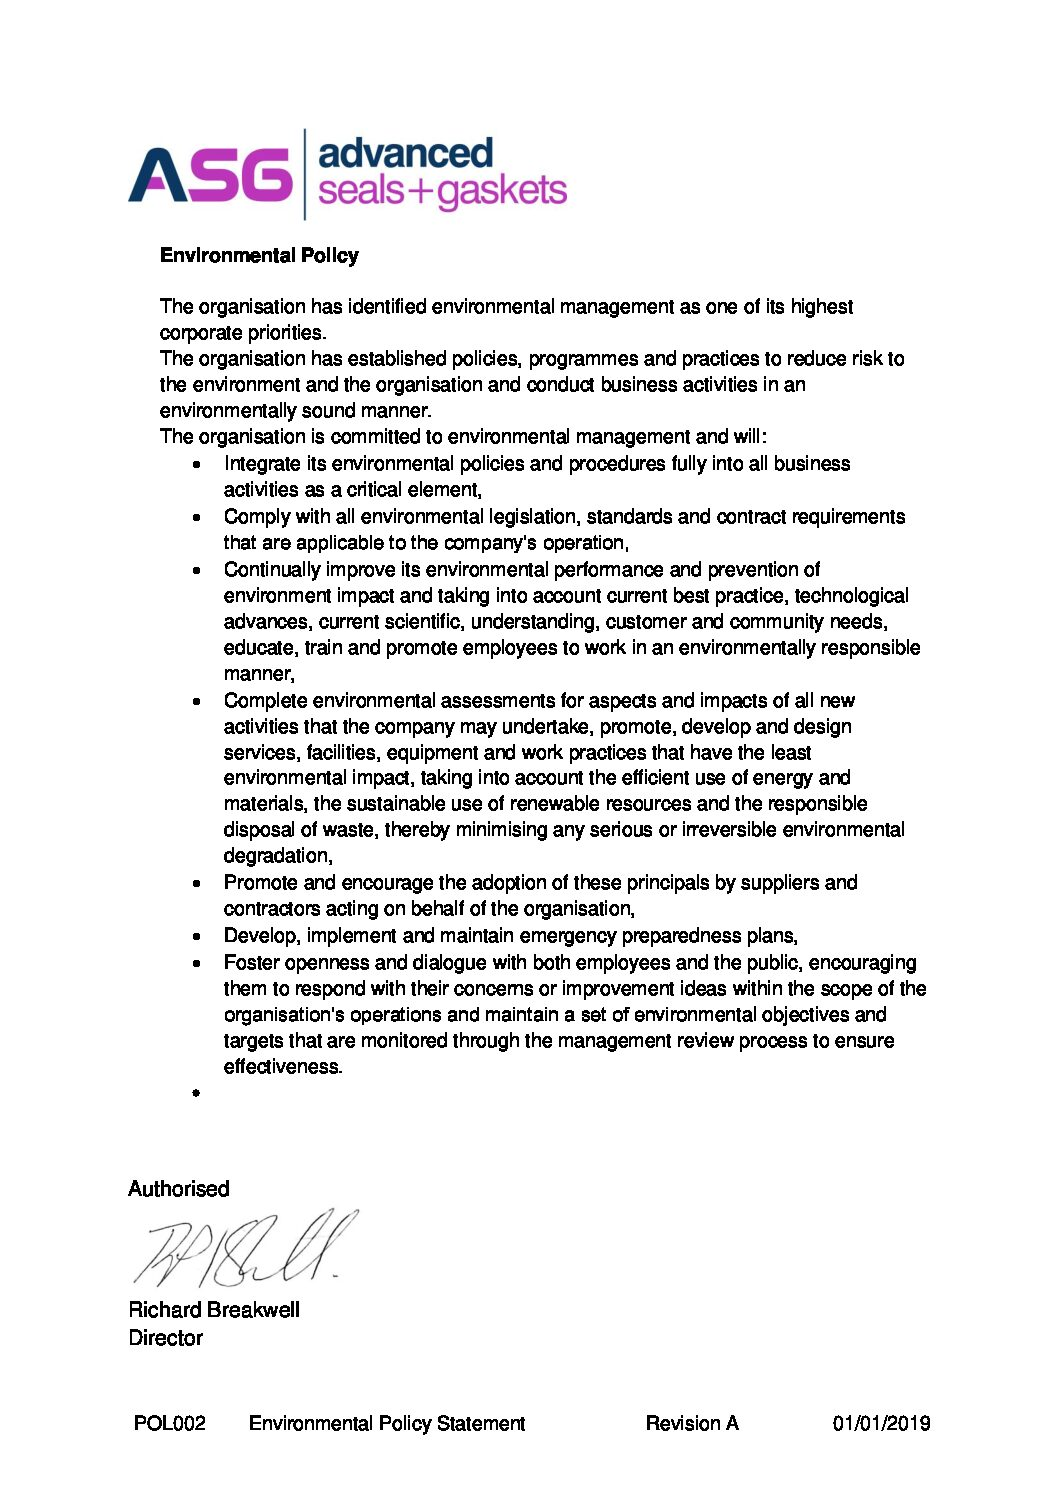 Pol002 Pdf Environmental Policy Advanced Seals And Gaskets